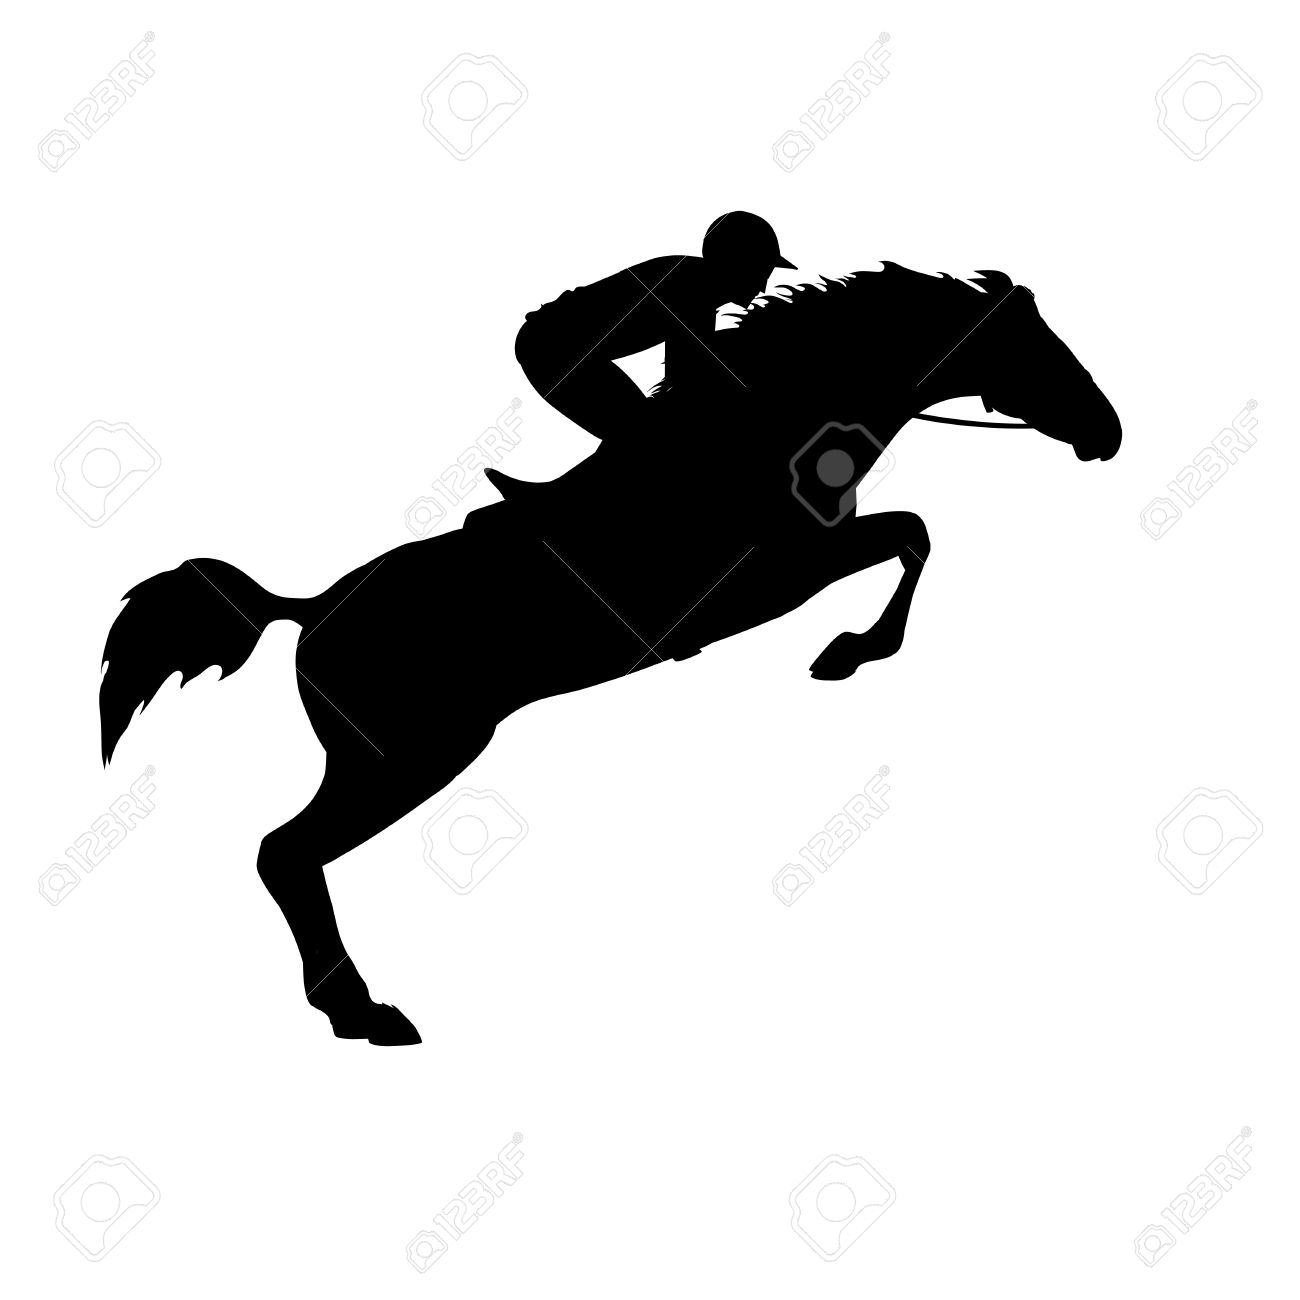 Horse Race Horse And Rider Racing Horse And Jockey Silhouette Royalty Free Cliparts Vectors And Stock Illustration Image 40257834